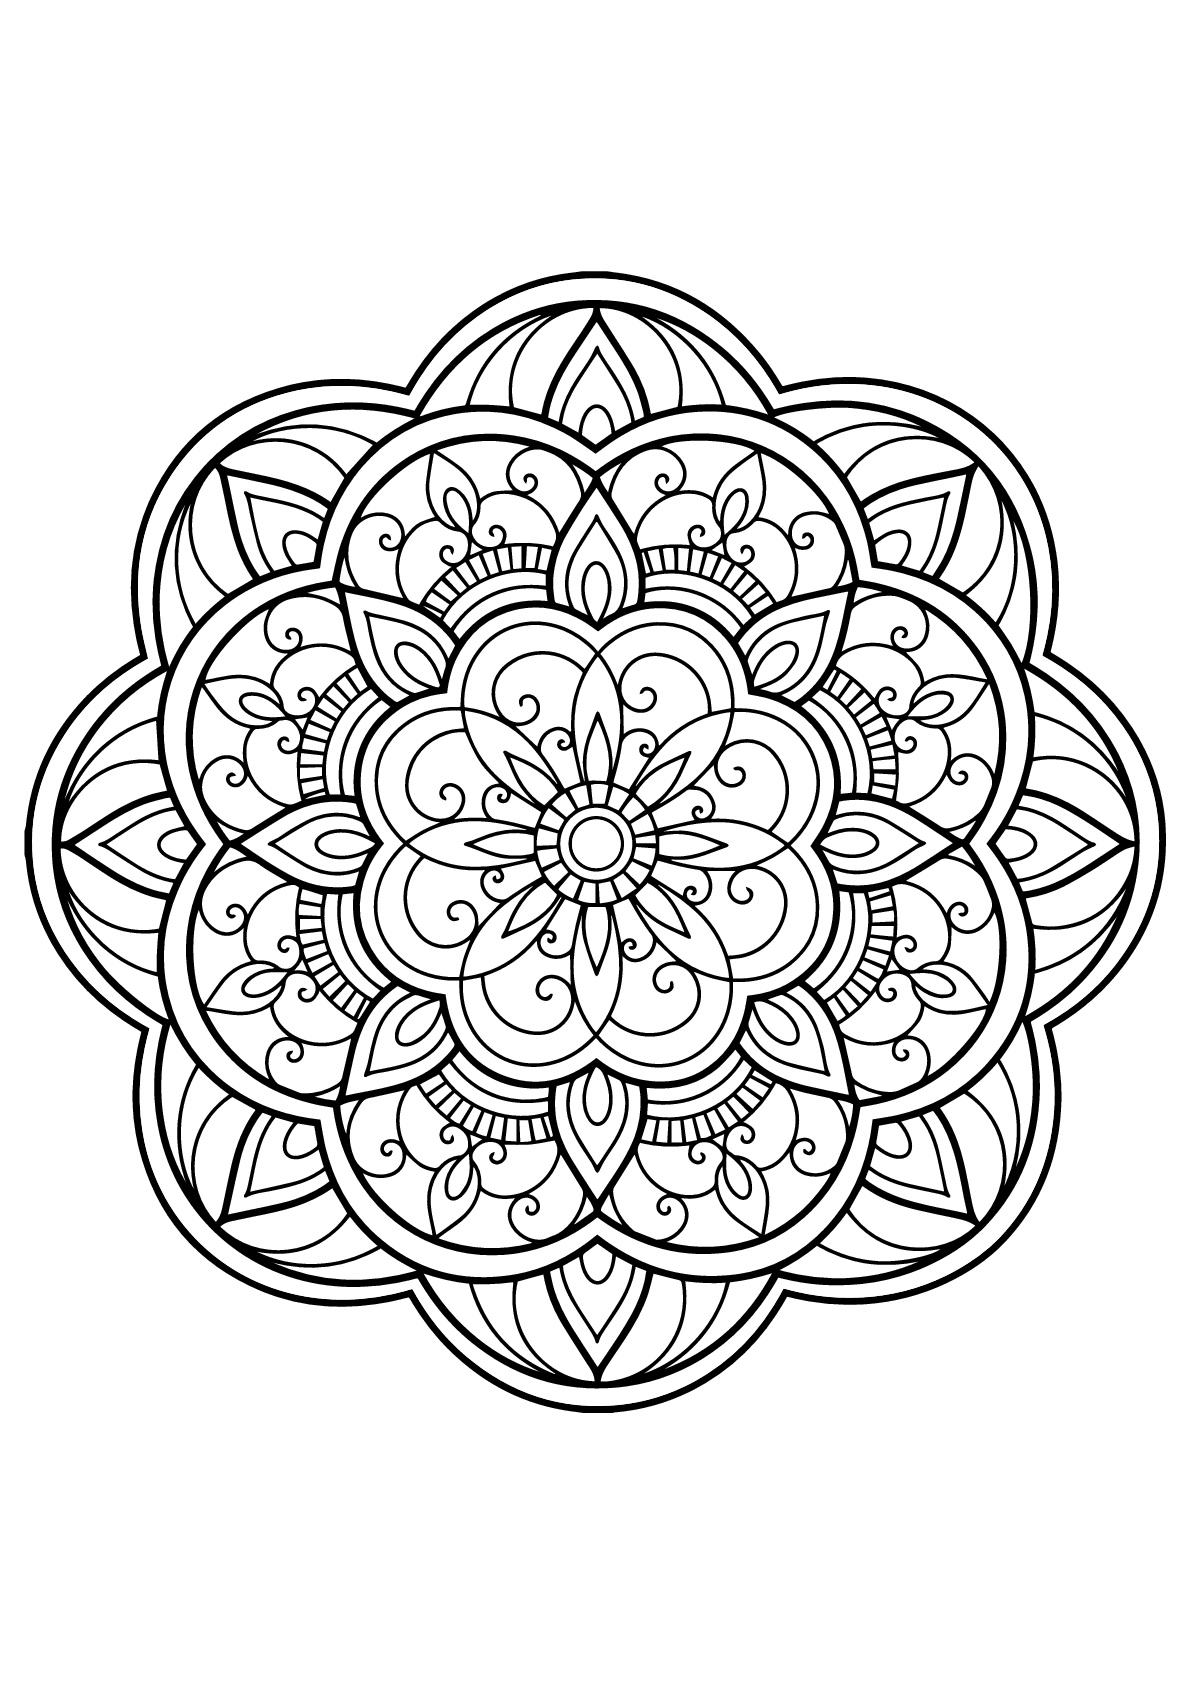 mandala coloring pages for adults free free clipart of a black and white adult coloring page pages free for coloring adults mandala